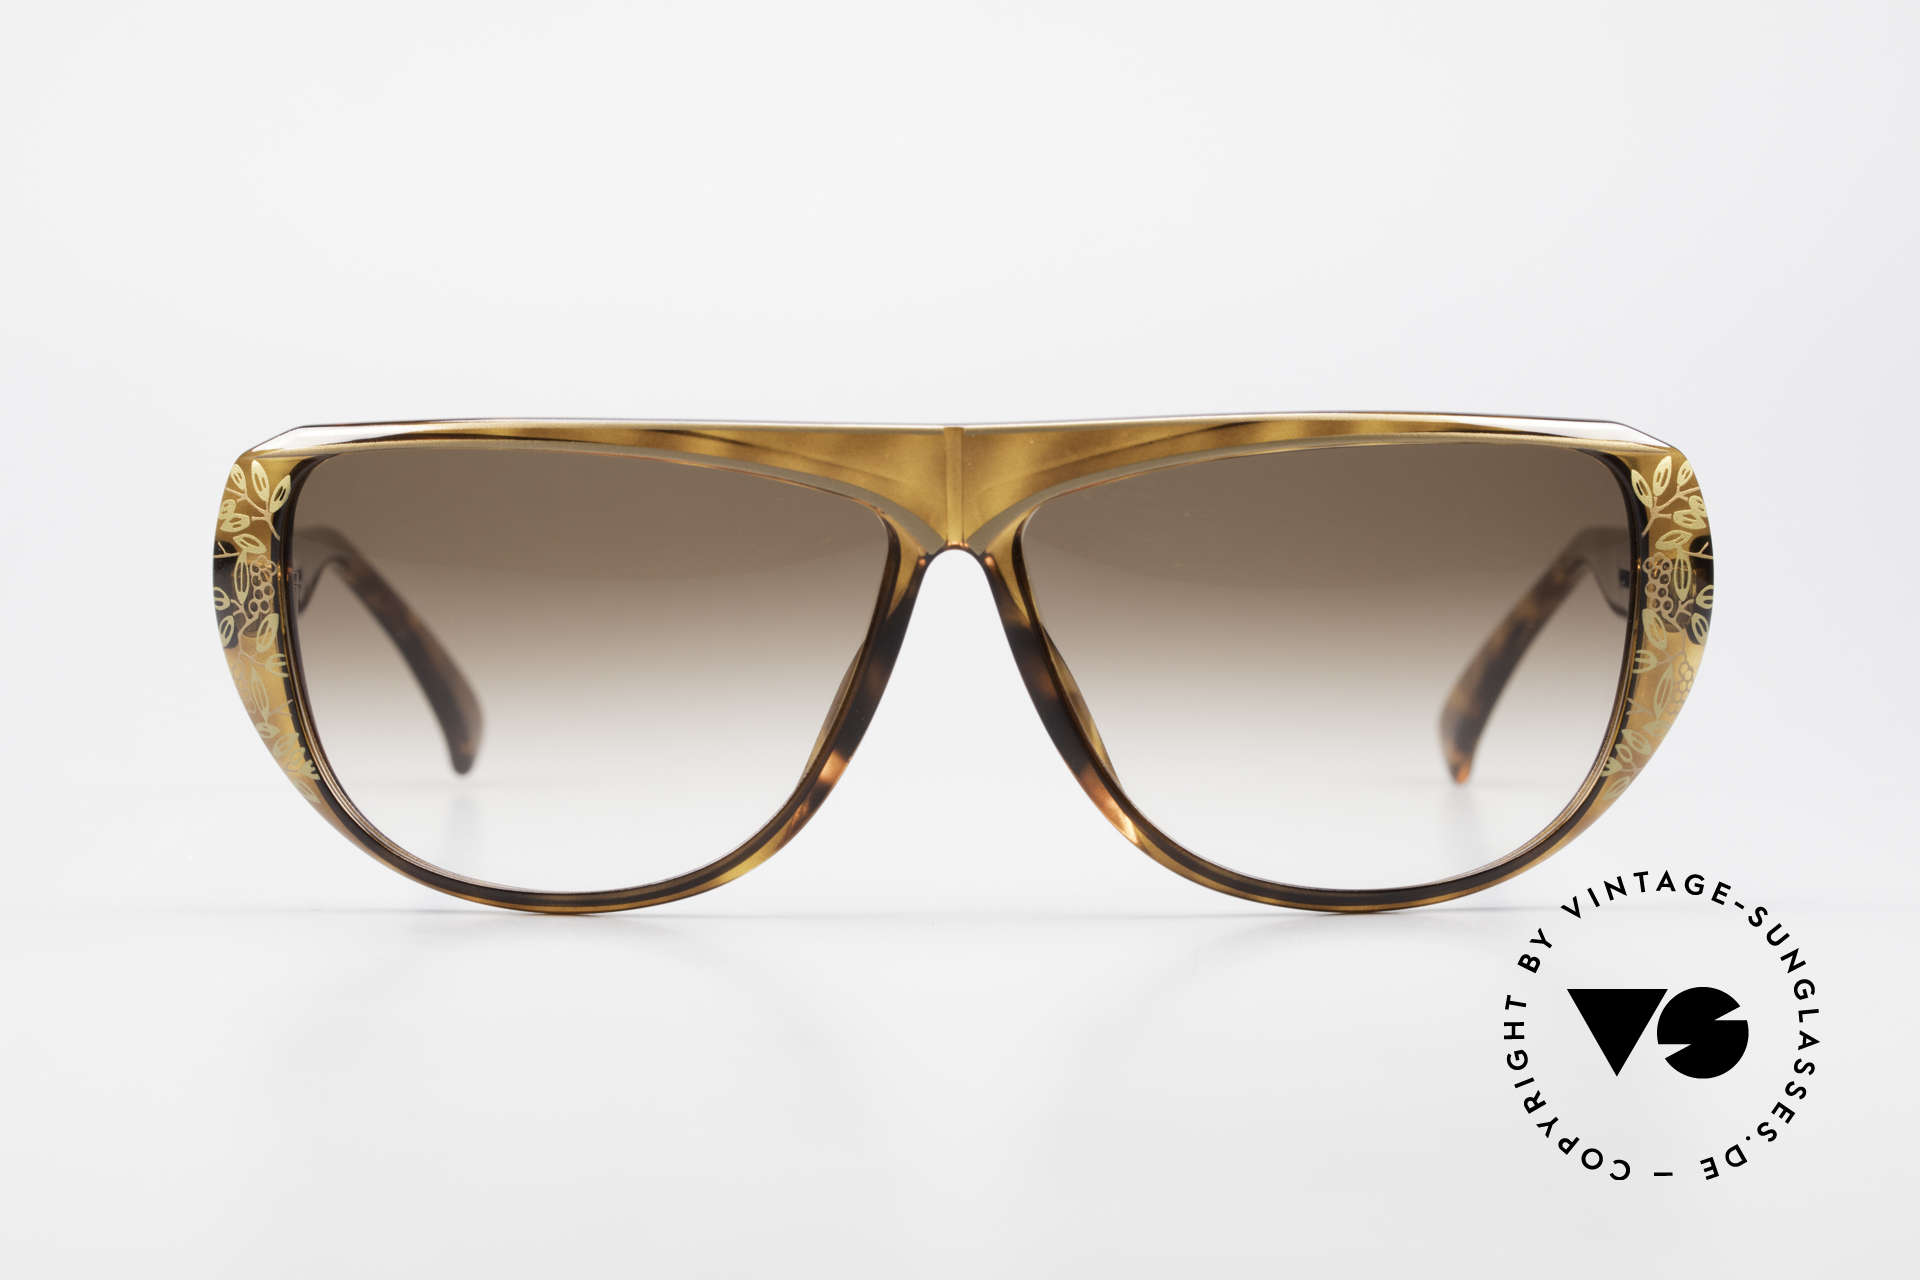 Christian Dior 2421 Ladies Sunglasses 80's Rarity, glamorous colors & pattern thanks to Optyl material, Made for Women